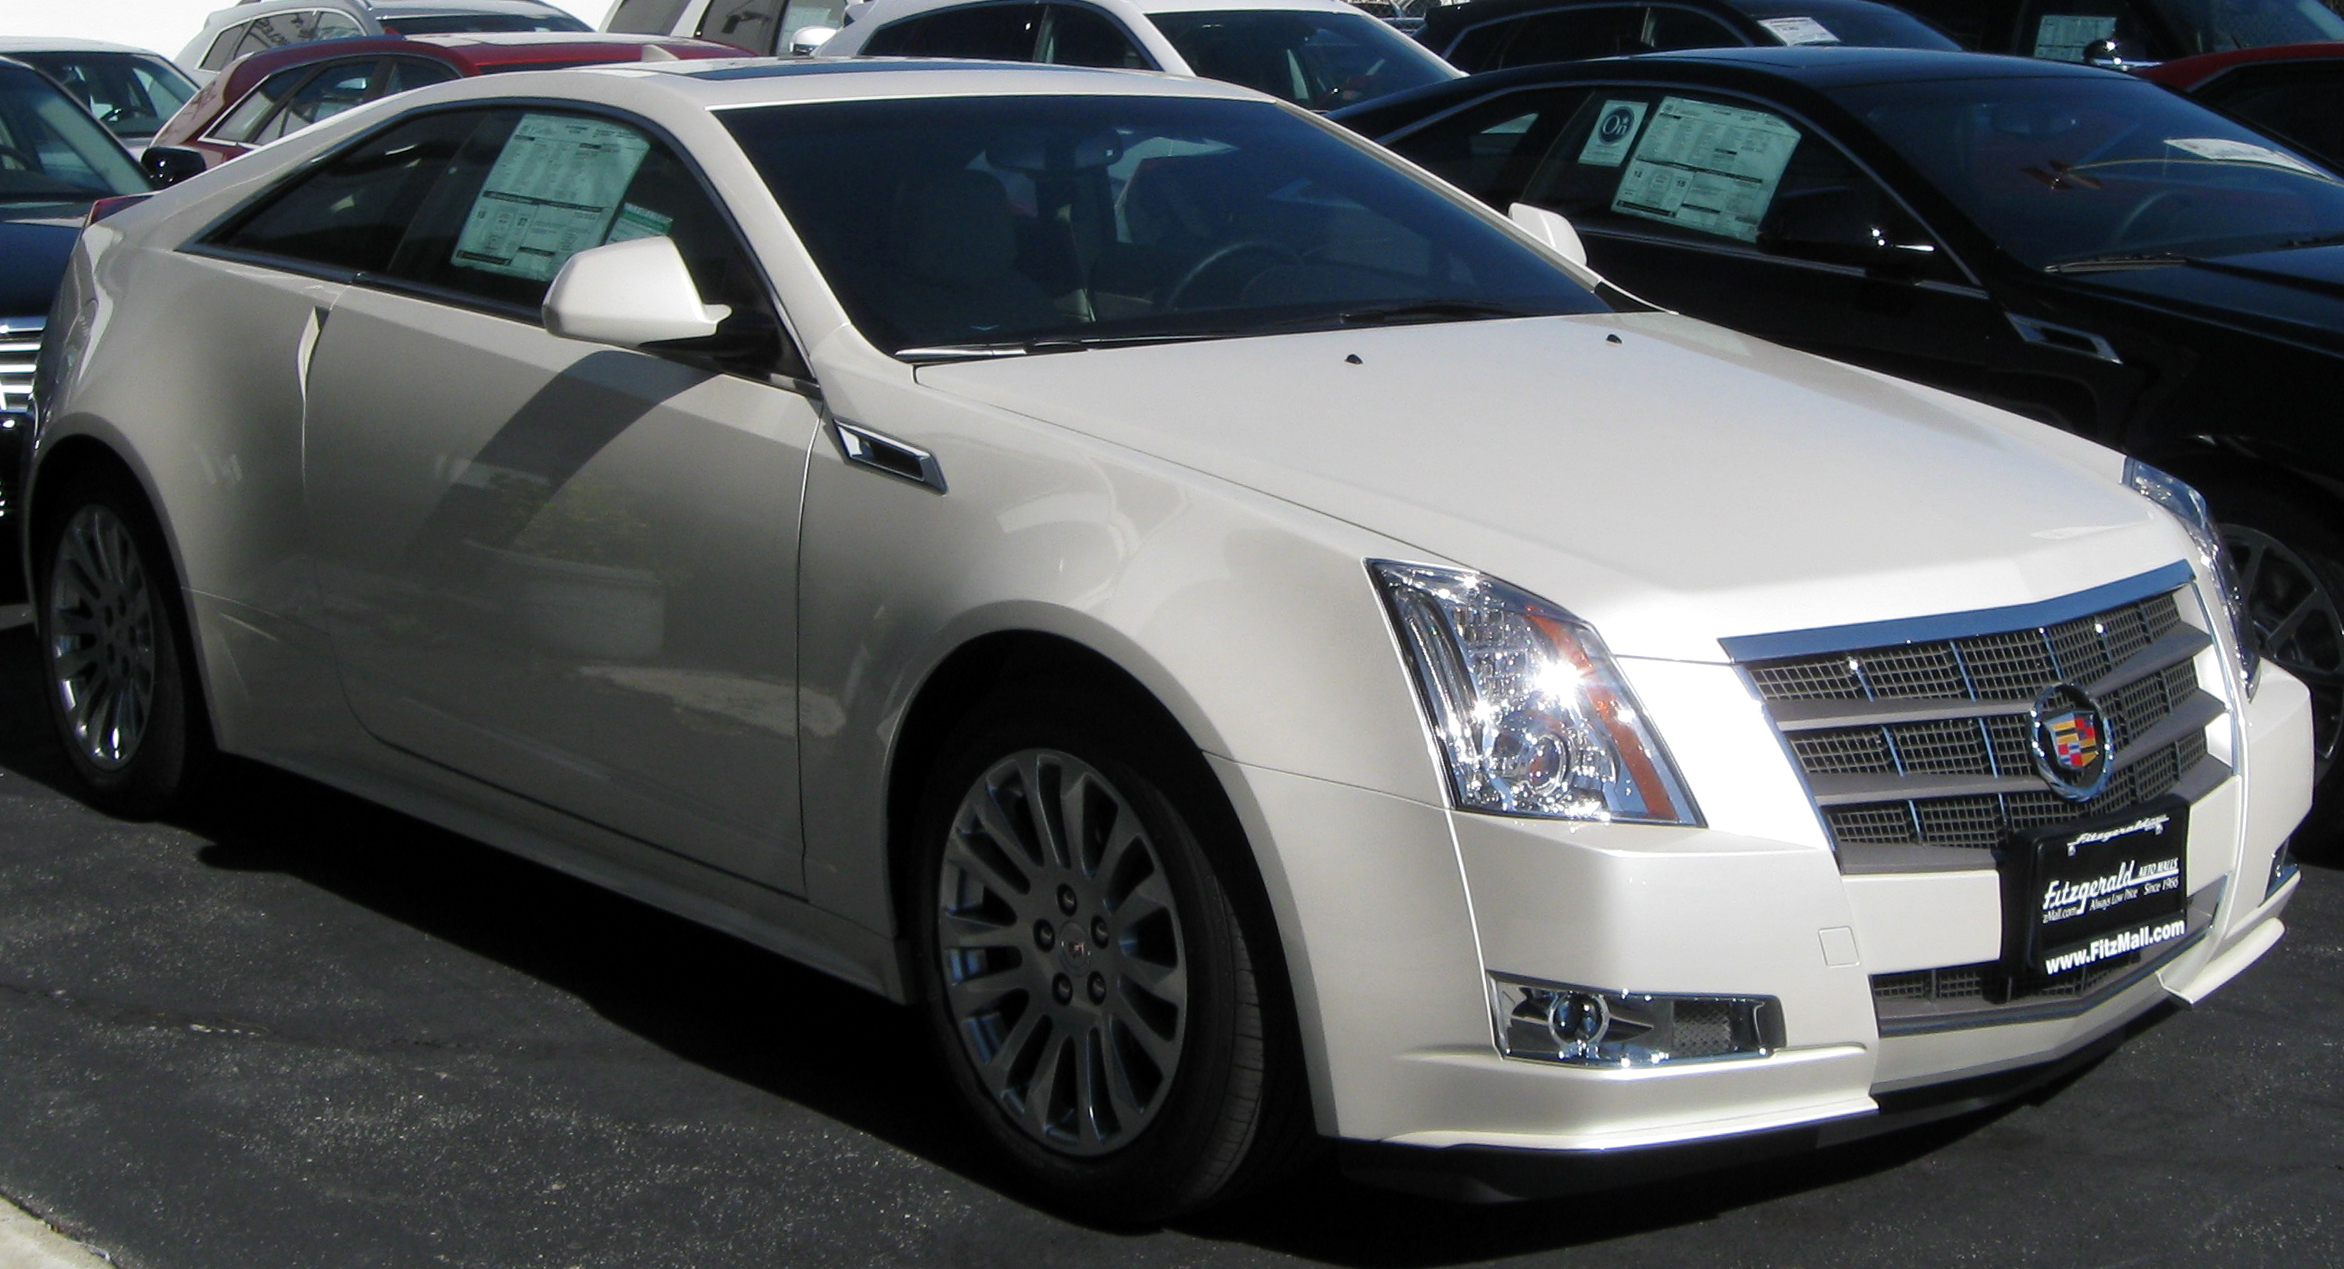 File2011 Cadillac CTS coupe  10222010 1jpg  Wikimedia Commons